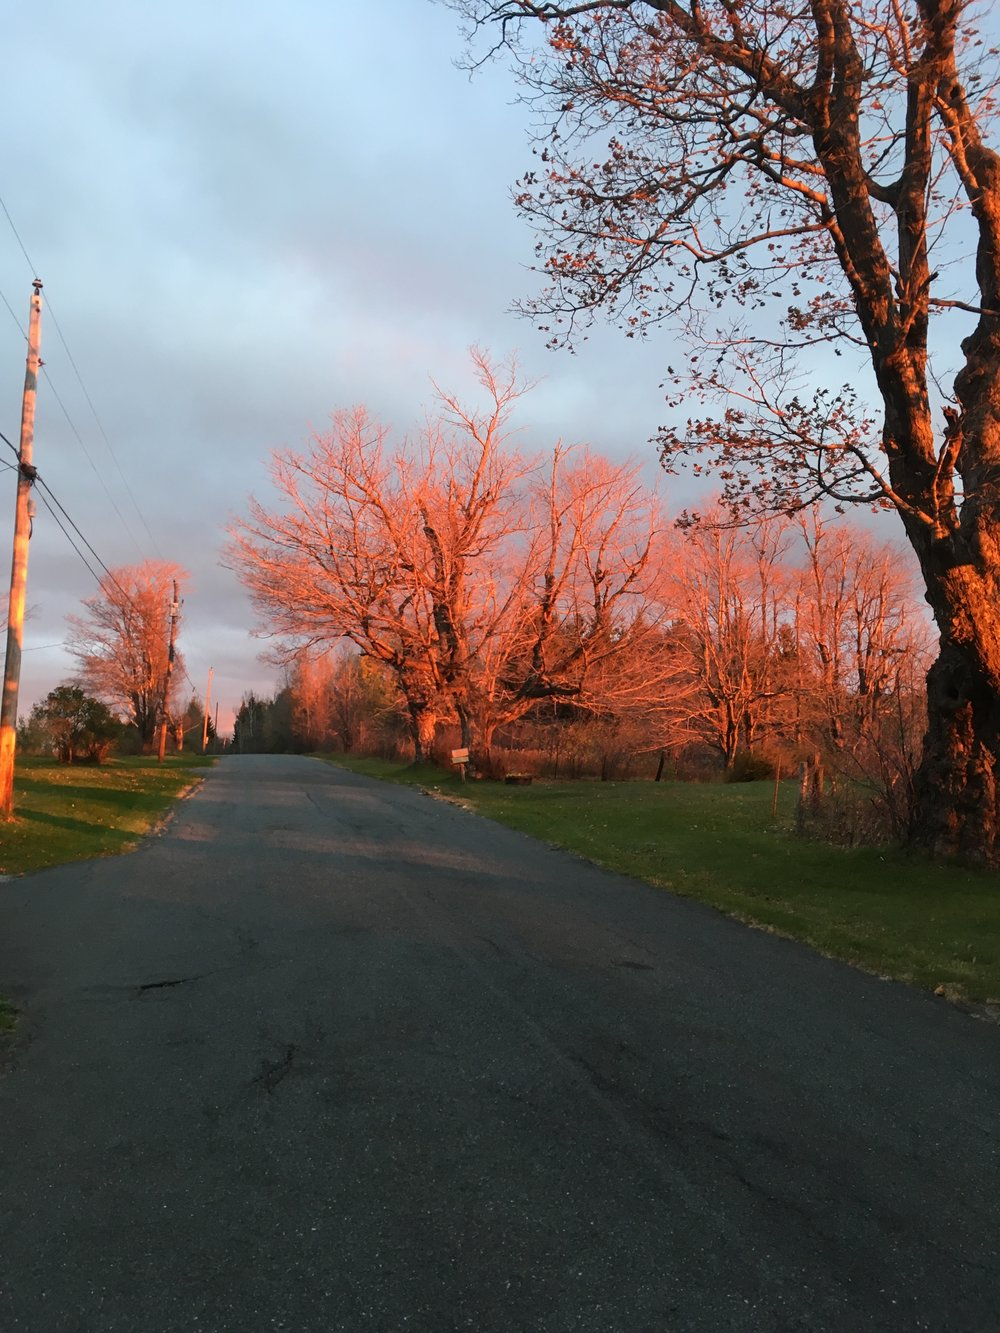 Sunrise, East Windsor Rd, Late October